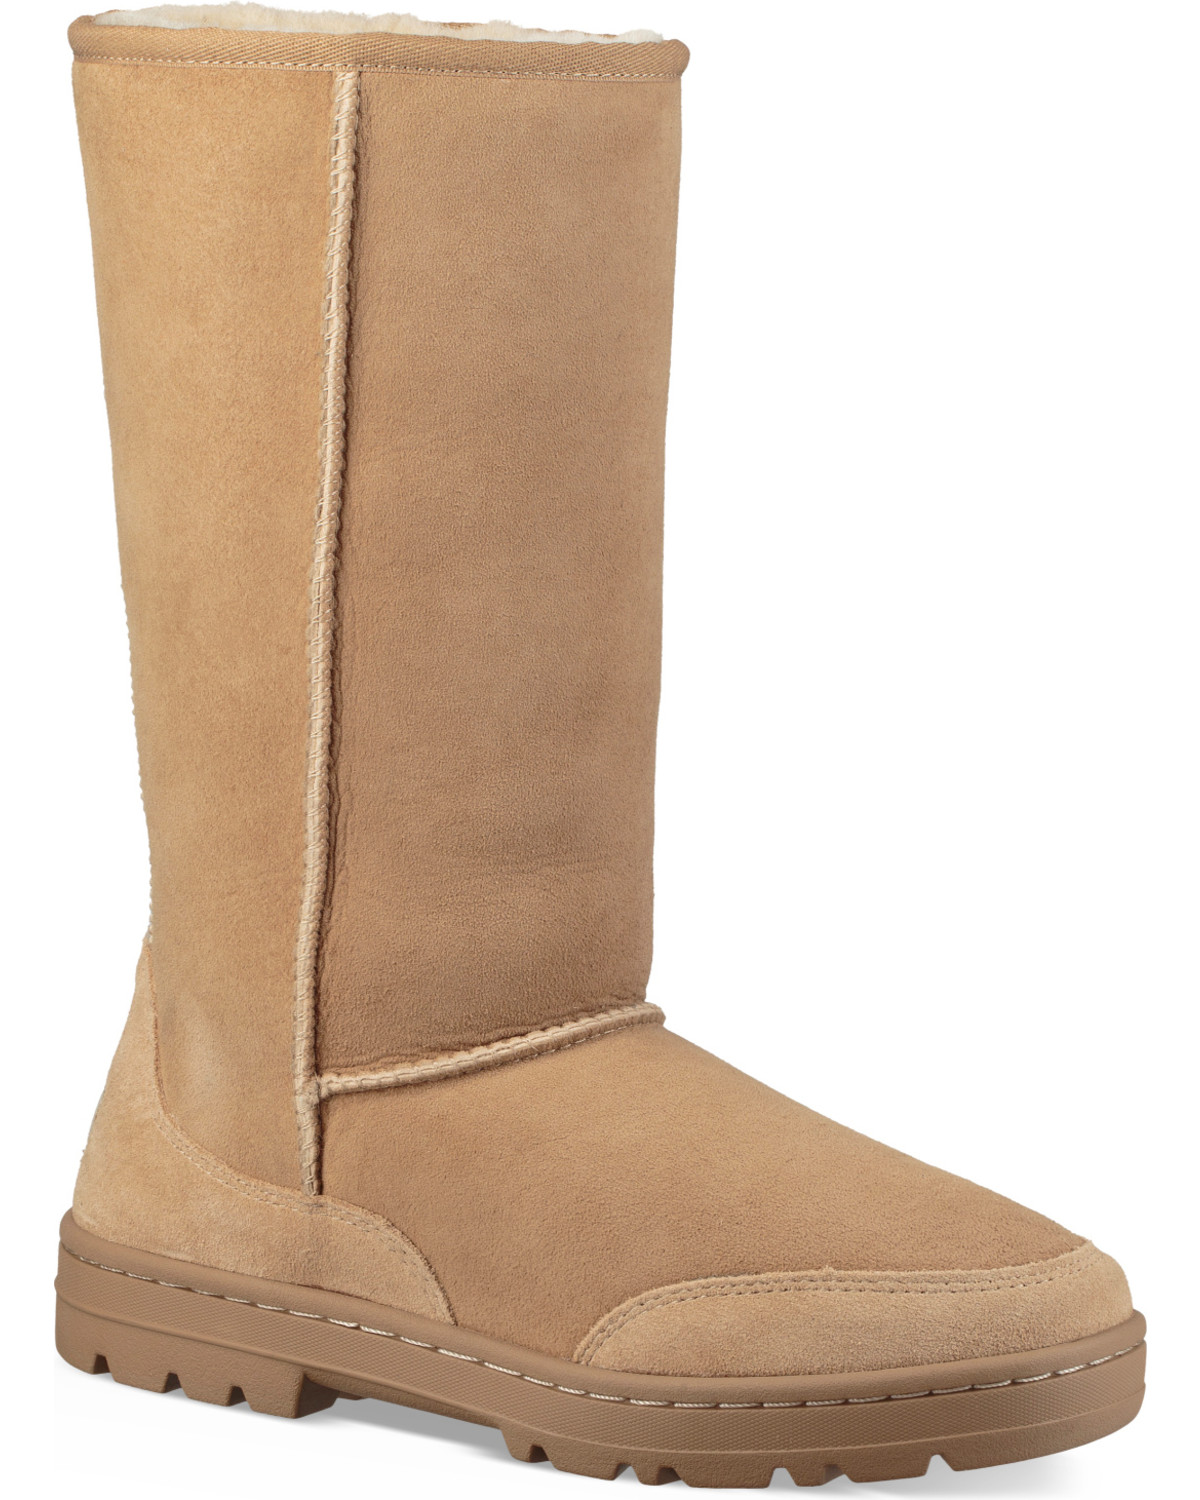 super popular 8ff66 18c0f UGG Women's Sand Ultra Tall Revival Boots